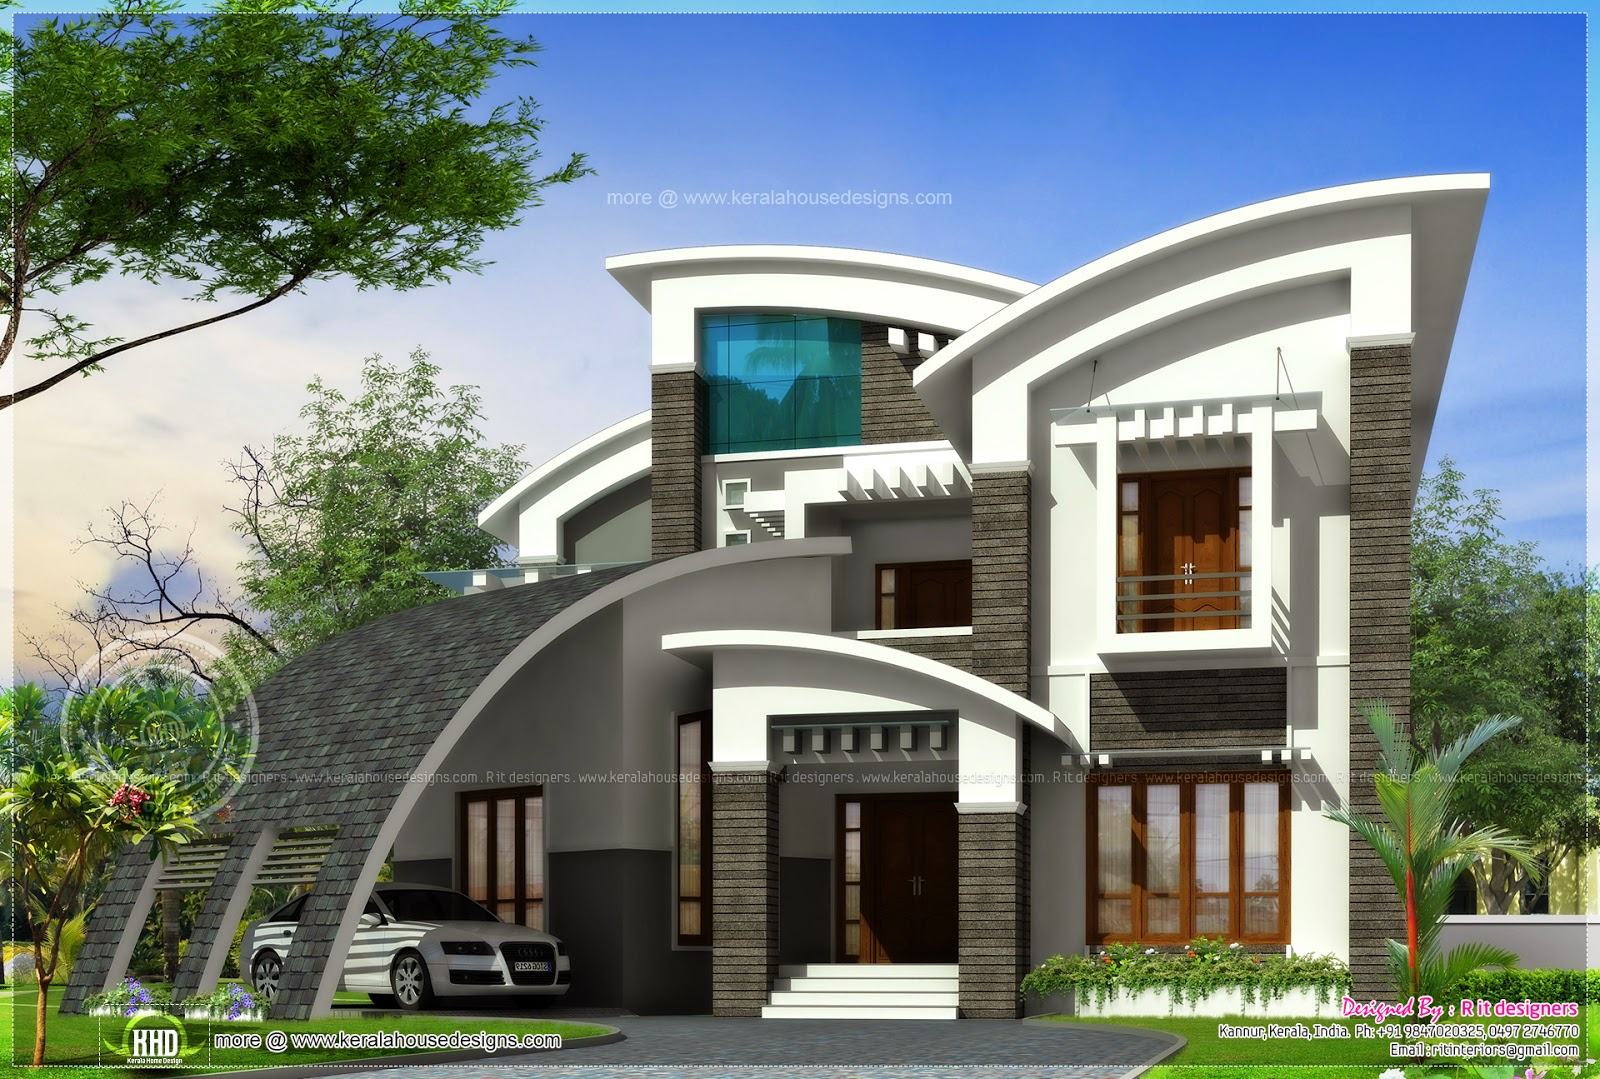 Super luxury ultra modern house design indian house plans for Ultra modern house